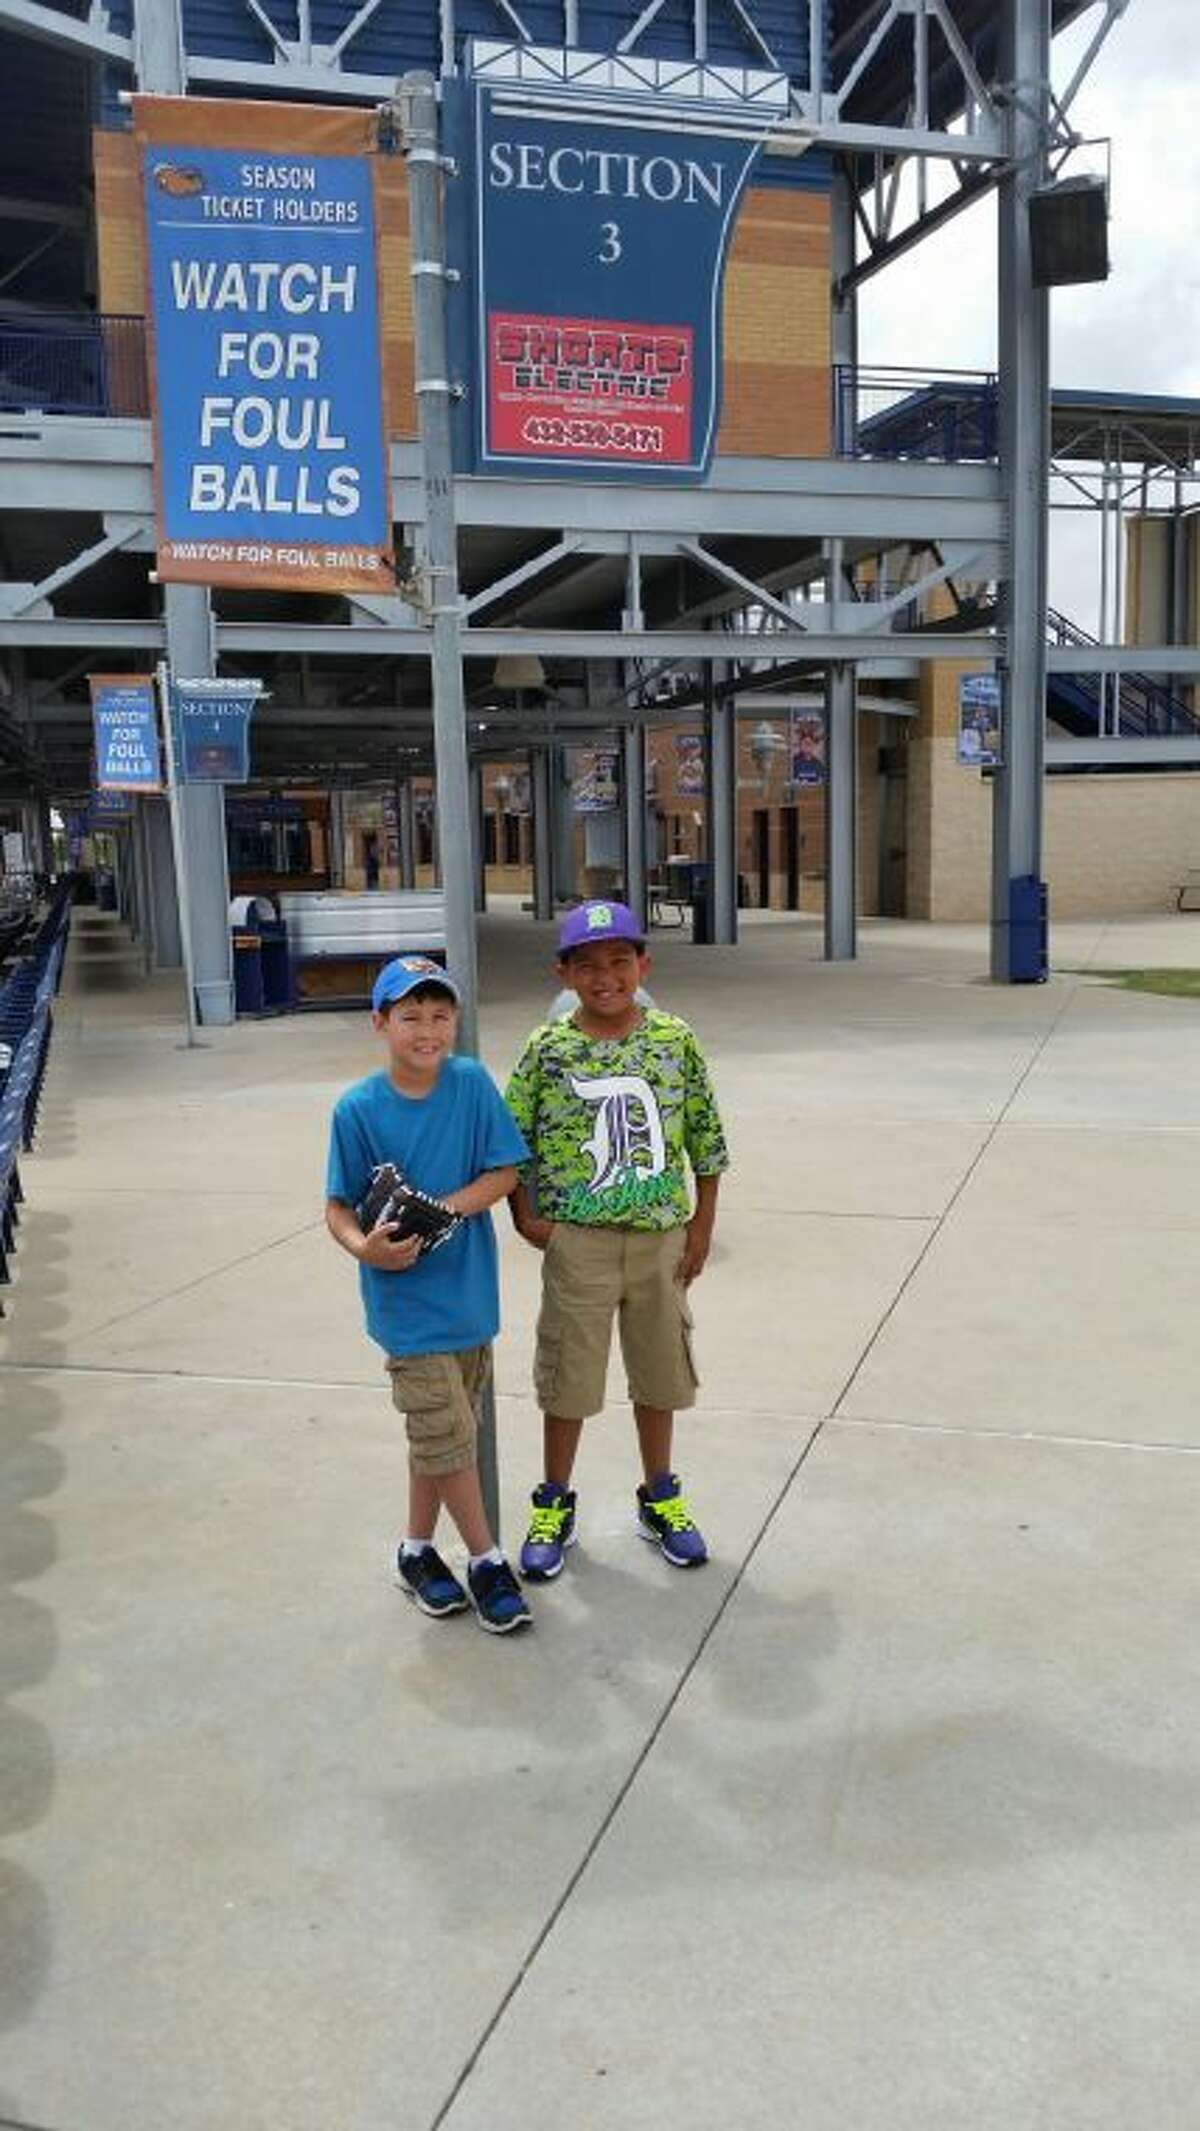 Nicolas Pettit and A.D. Navarro Jr. pose for a picture at a recent RockHounds game. When Pettit was hit in the face by a foul ball, Navarro spent his own money on a souvenir ball for him.